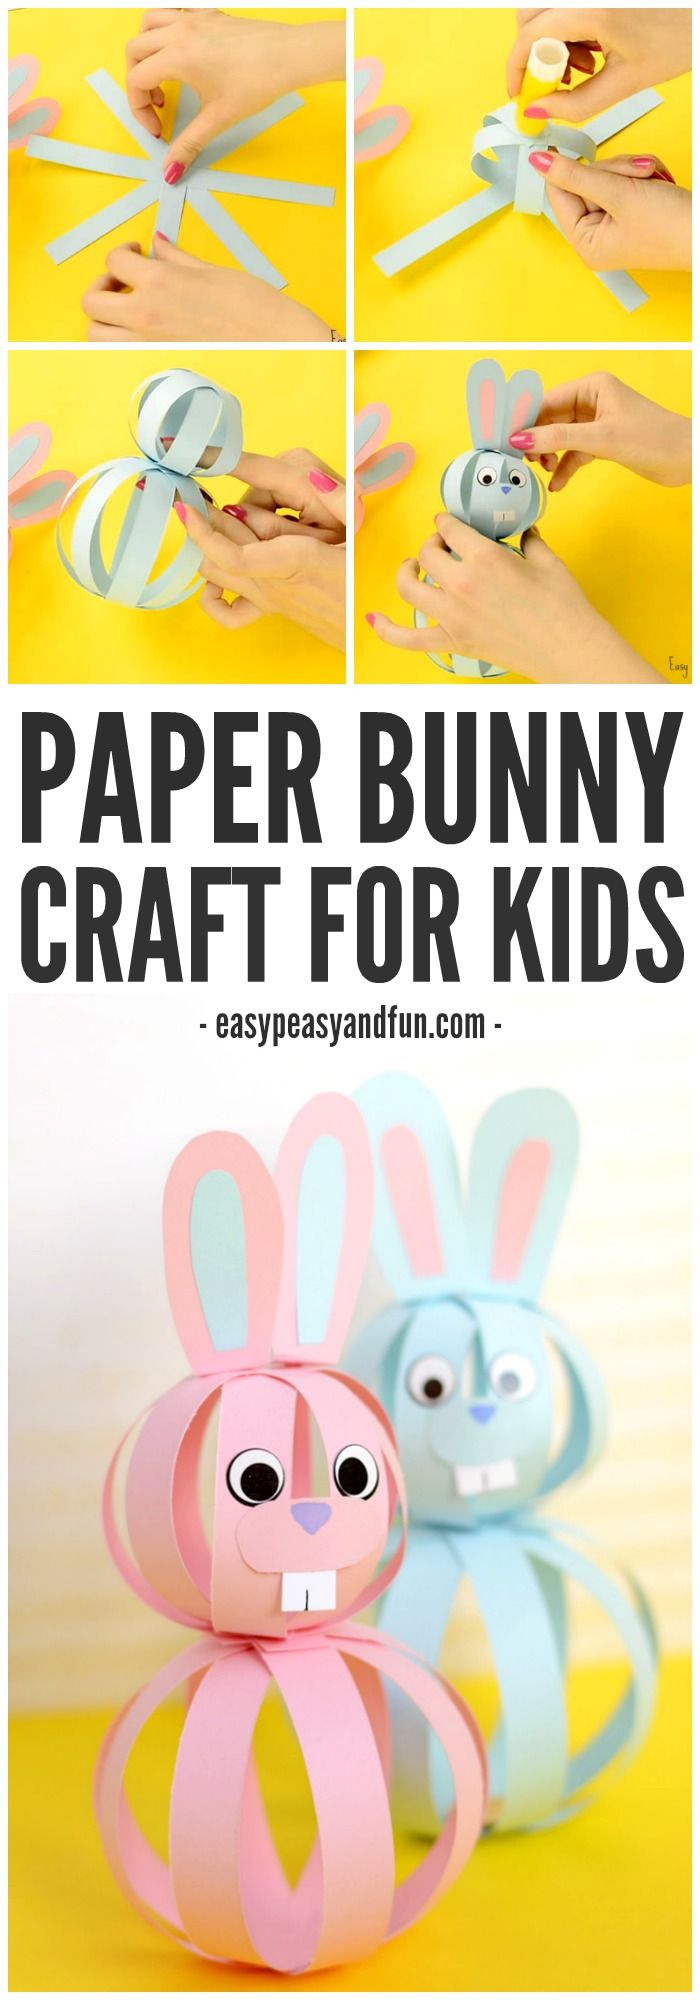 Easy Paper Craft Ideas For Kids Easy Paper Bunny Craft Easter Idea For Kids Diy And Craft Ideas